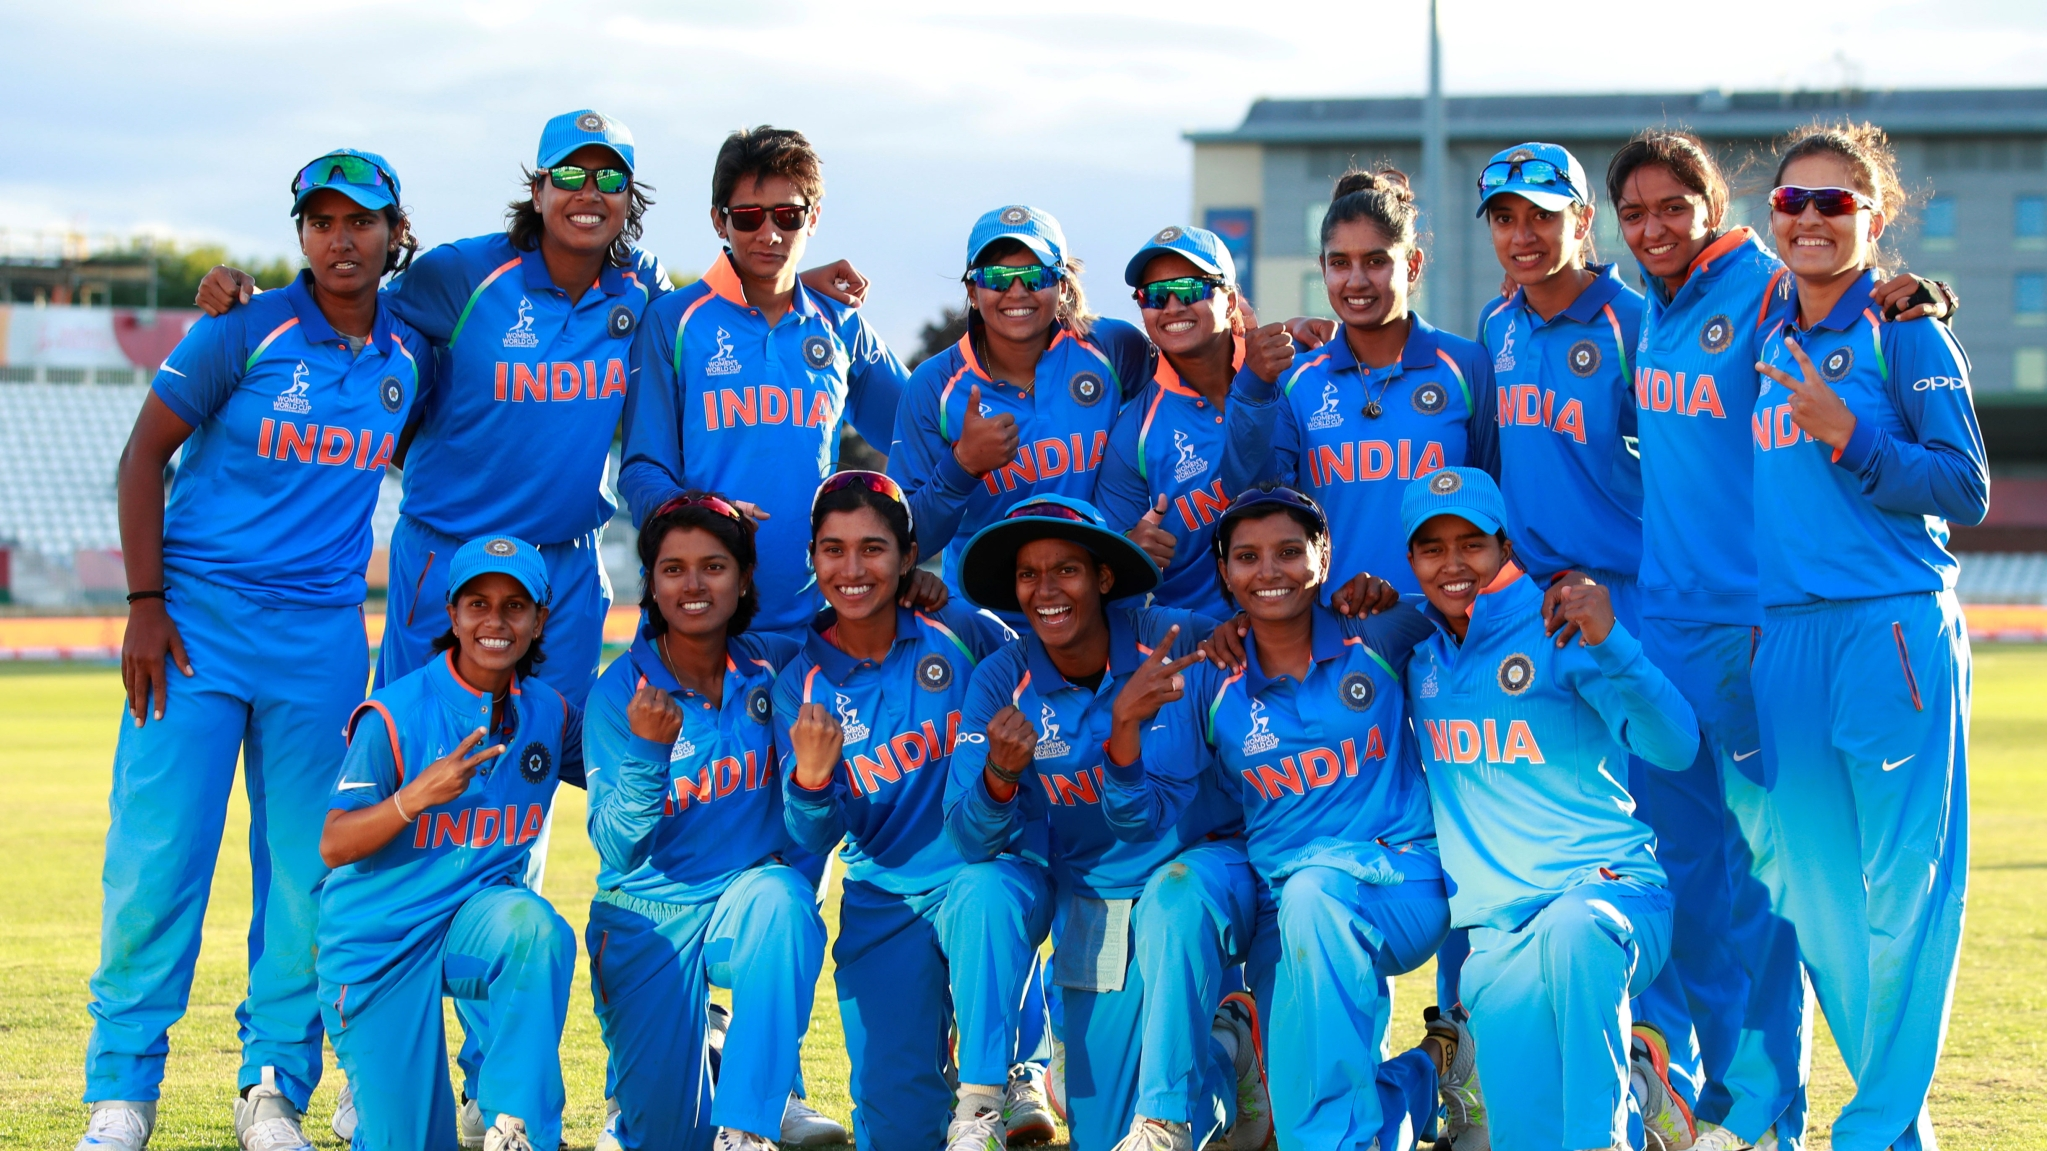 Cricket Indian Team Images: Preview: India Eye Historical Win Vs England In Women's